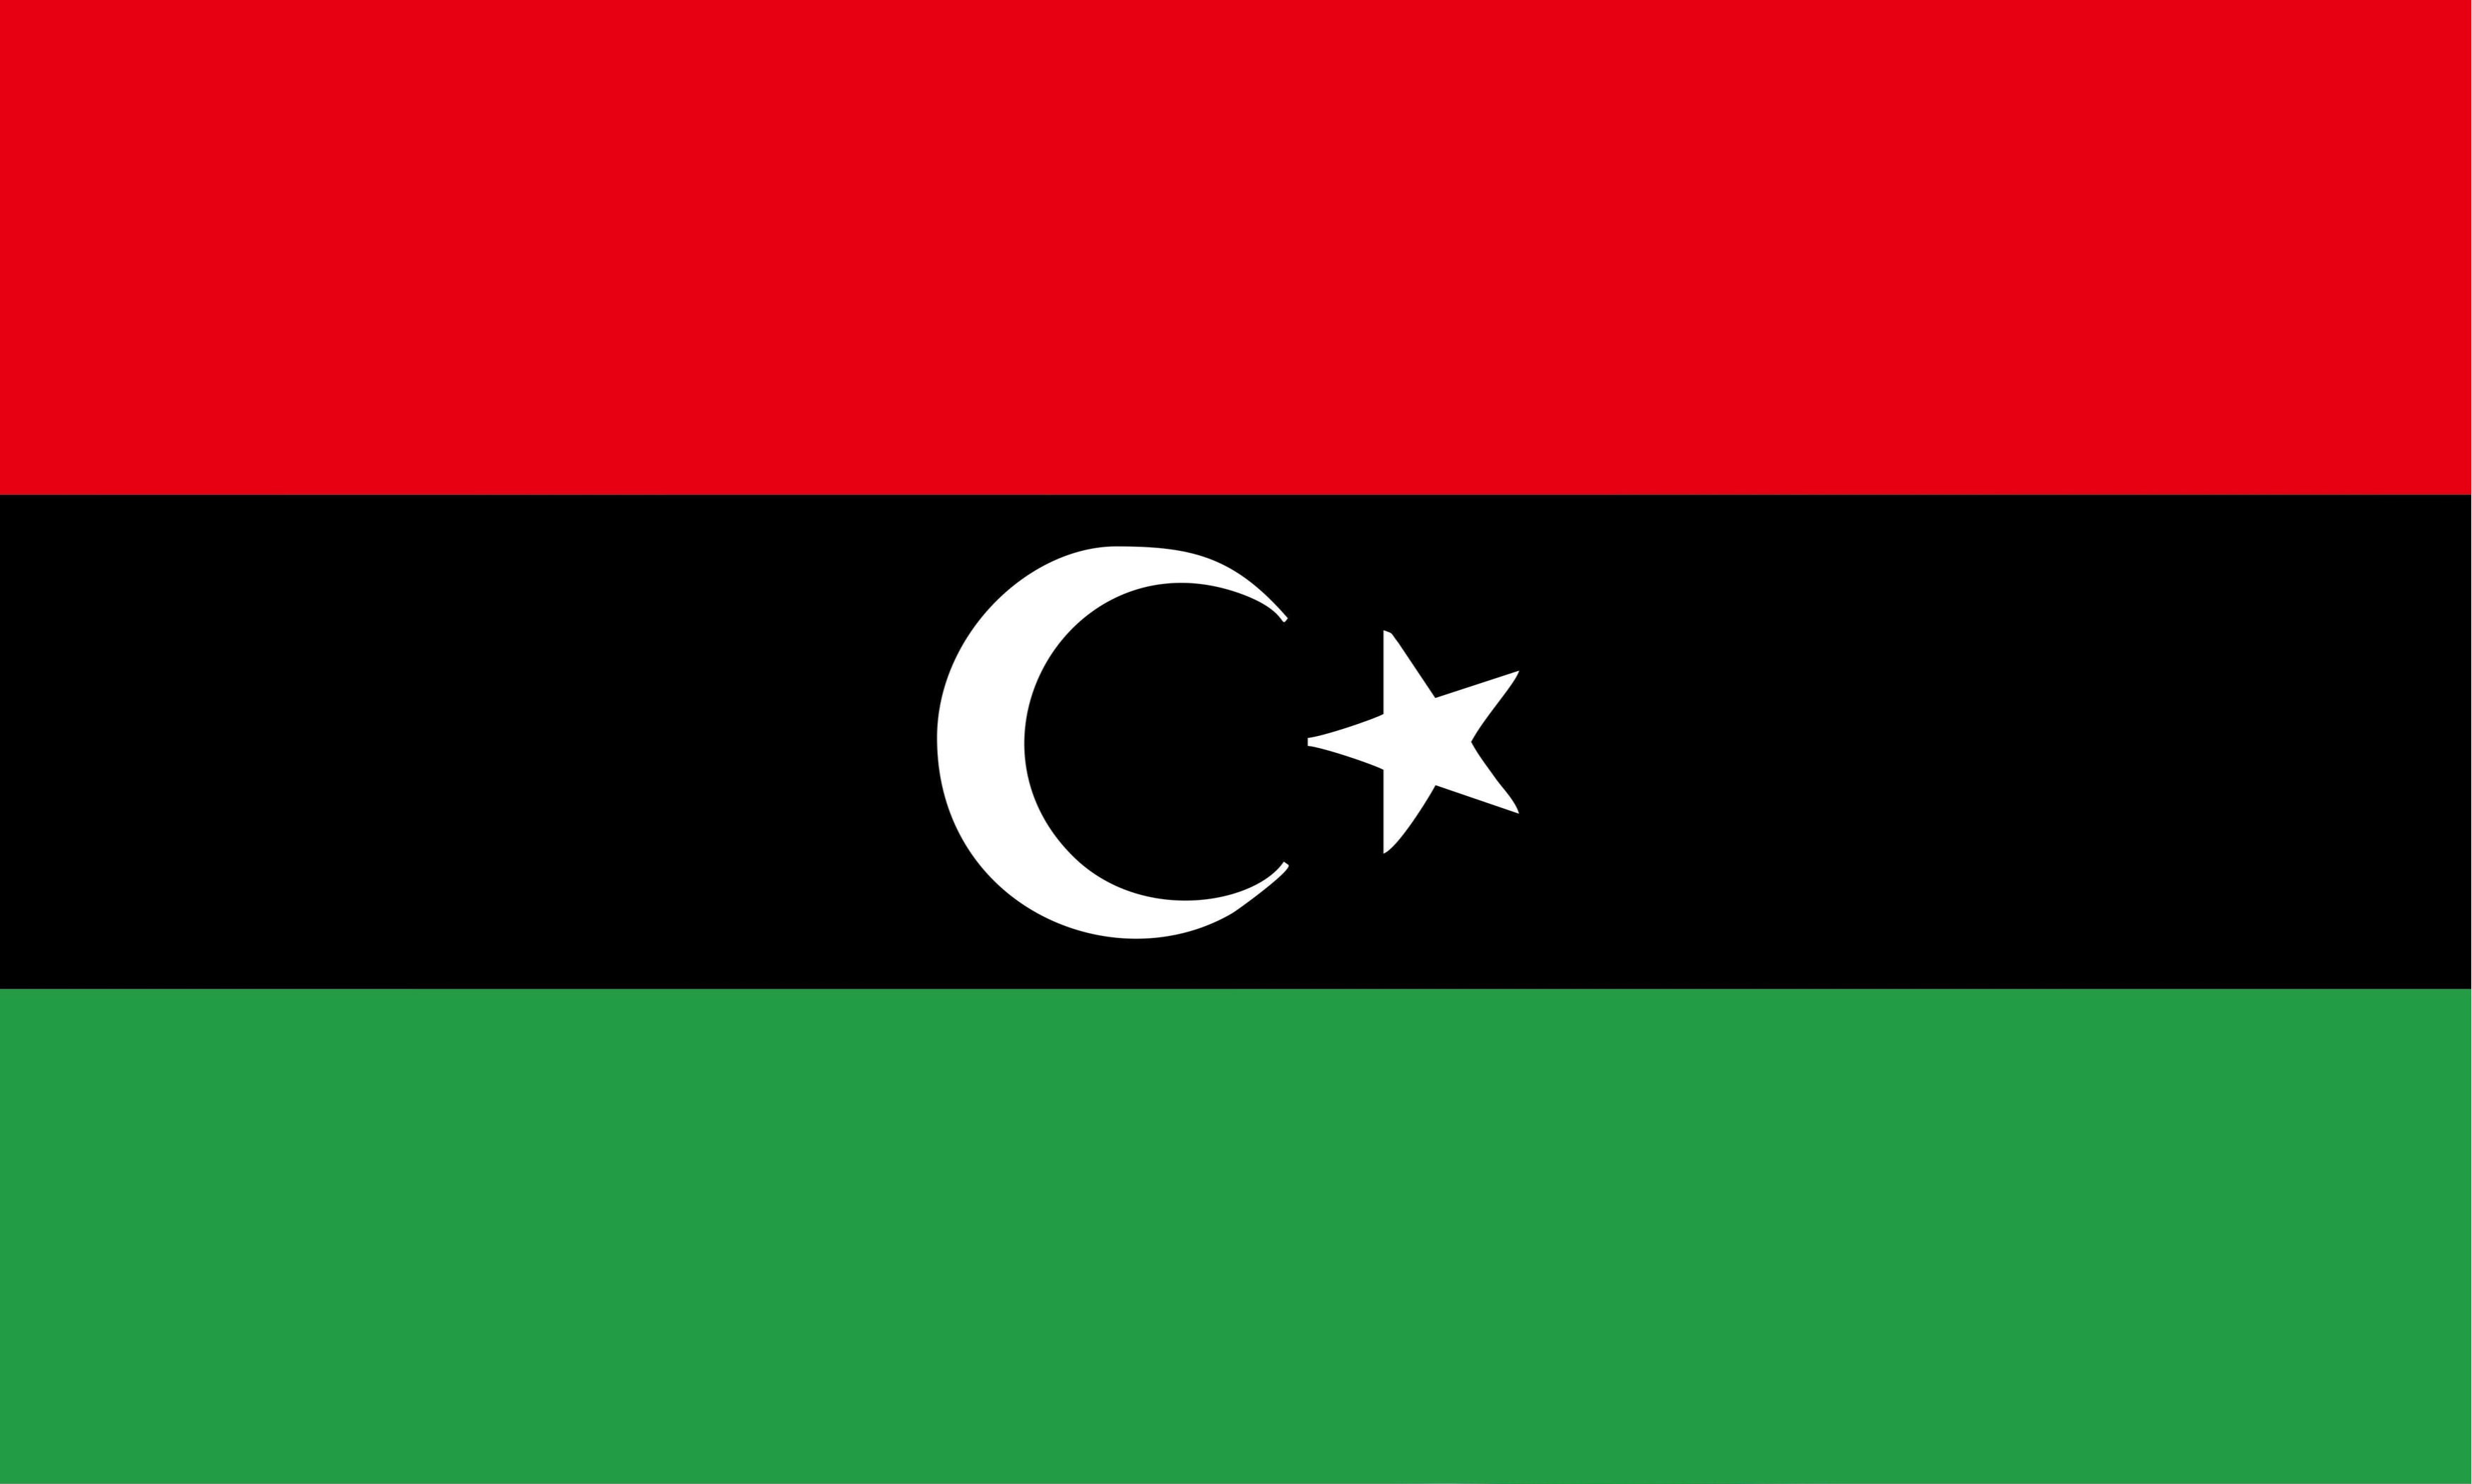 The crescent is symbolic of Islam, the predominant religion in Libya.